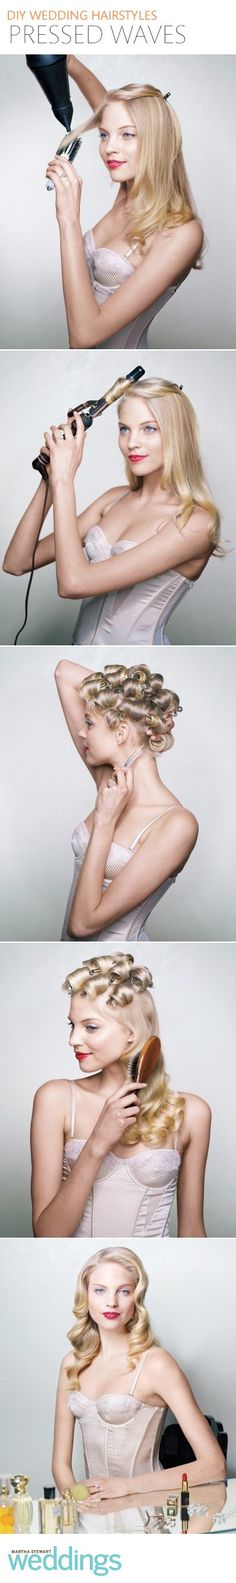 The perfect tutorial for vintage old holywood waves and curls, another variation would be to start off with damp hair and distribute mousse through it, then part it deep to one side and put rollers in the hair starting at the part. Let it air dry or use a hair dryer and when you take them out brush out the curls. Great for prom!